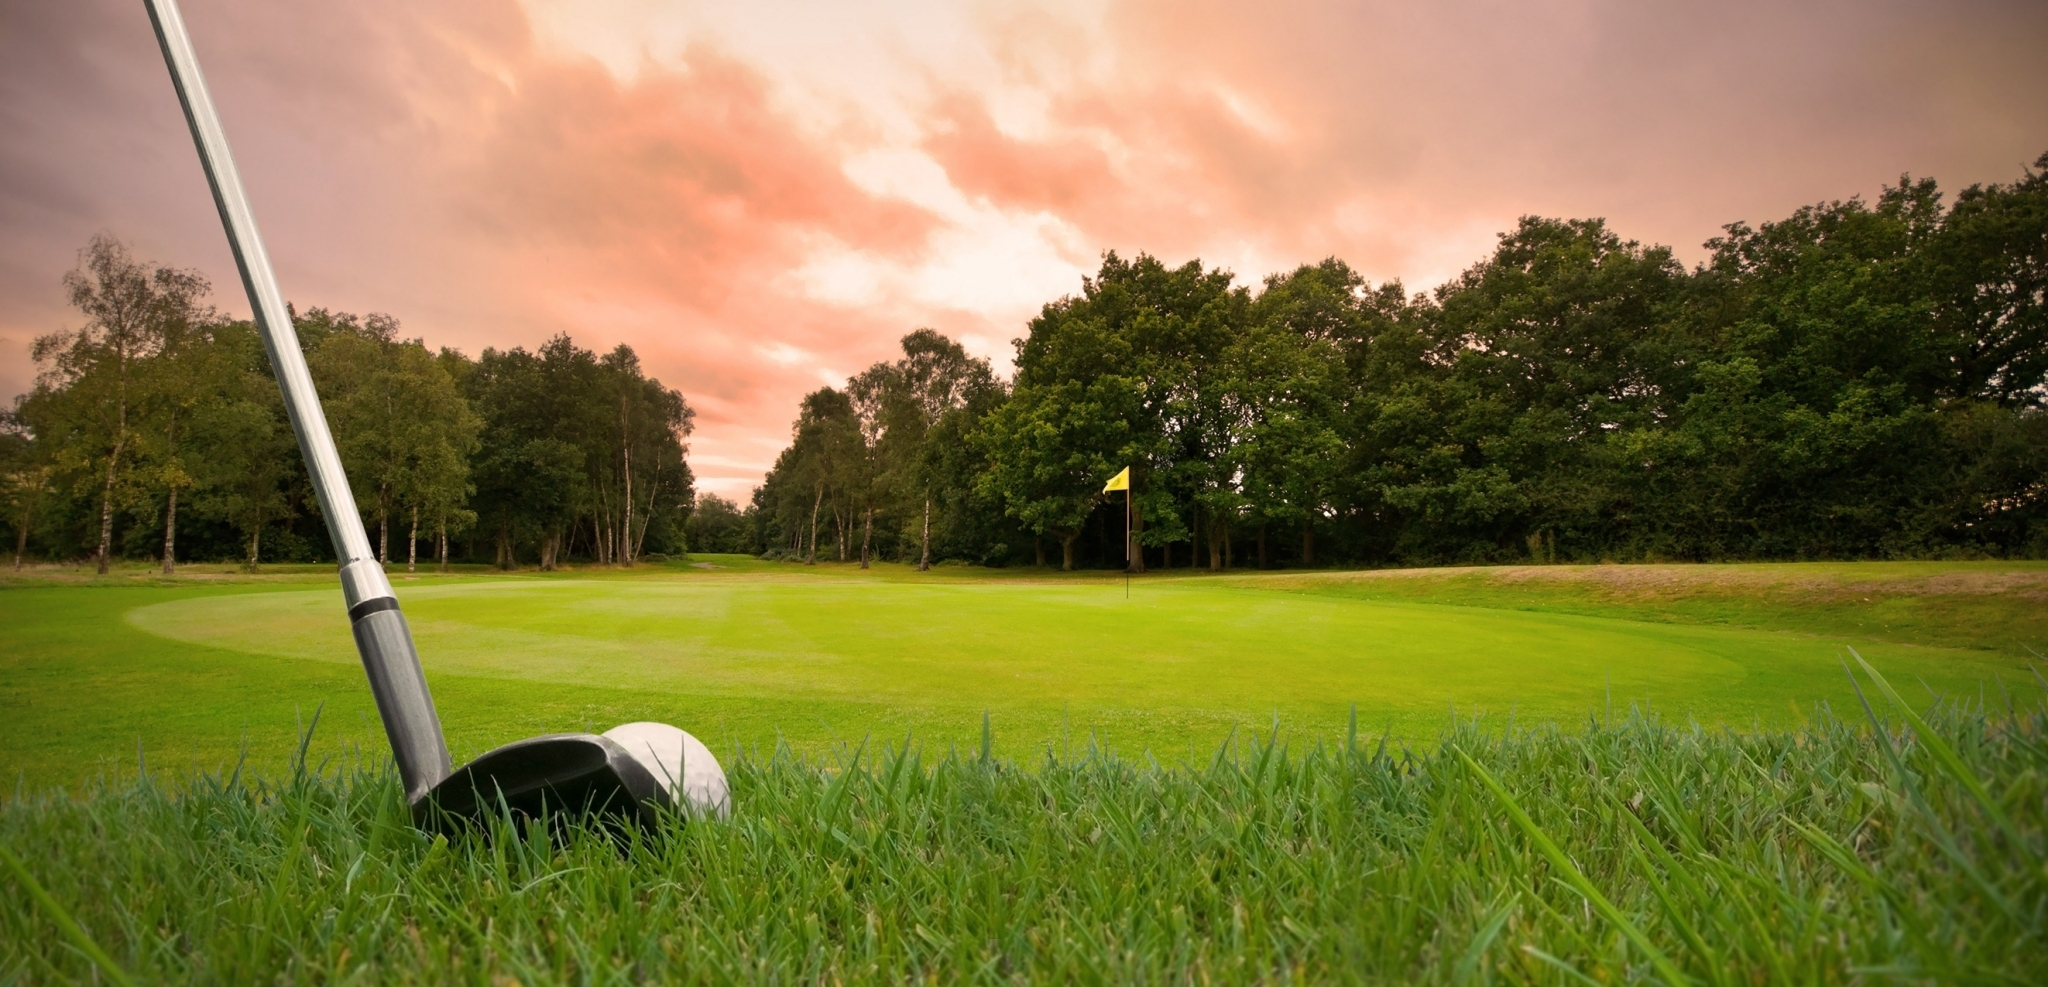 2048x987-432770-golf-pretty-picture-background.jpg